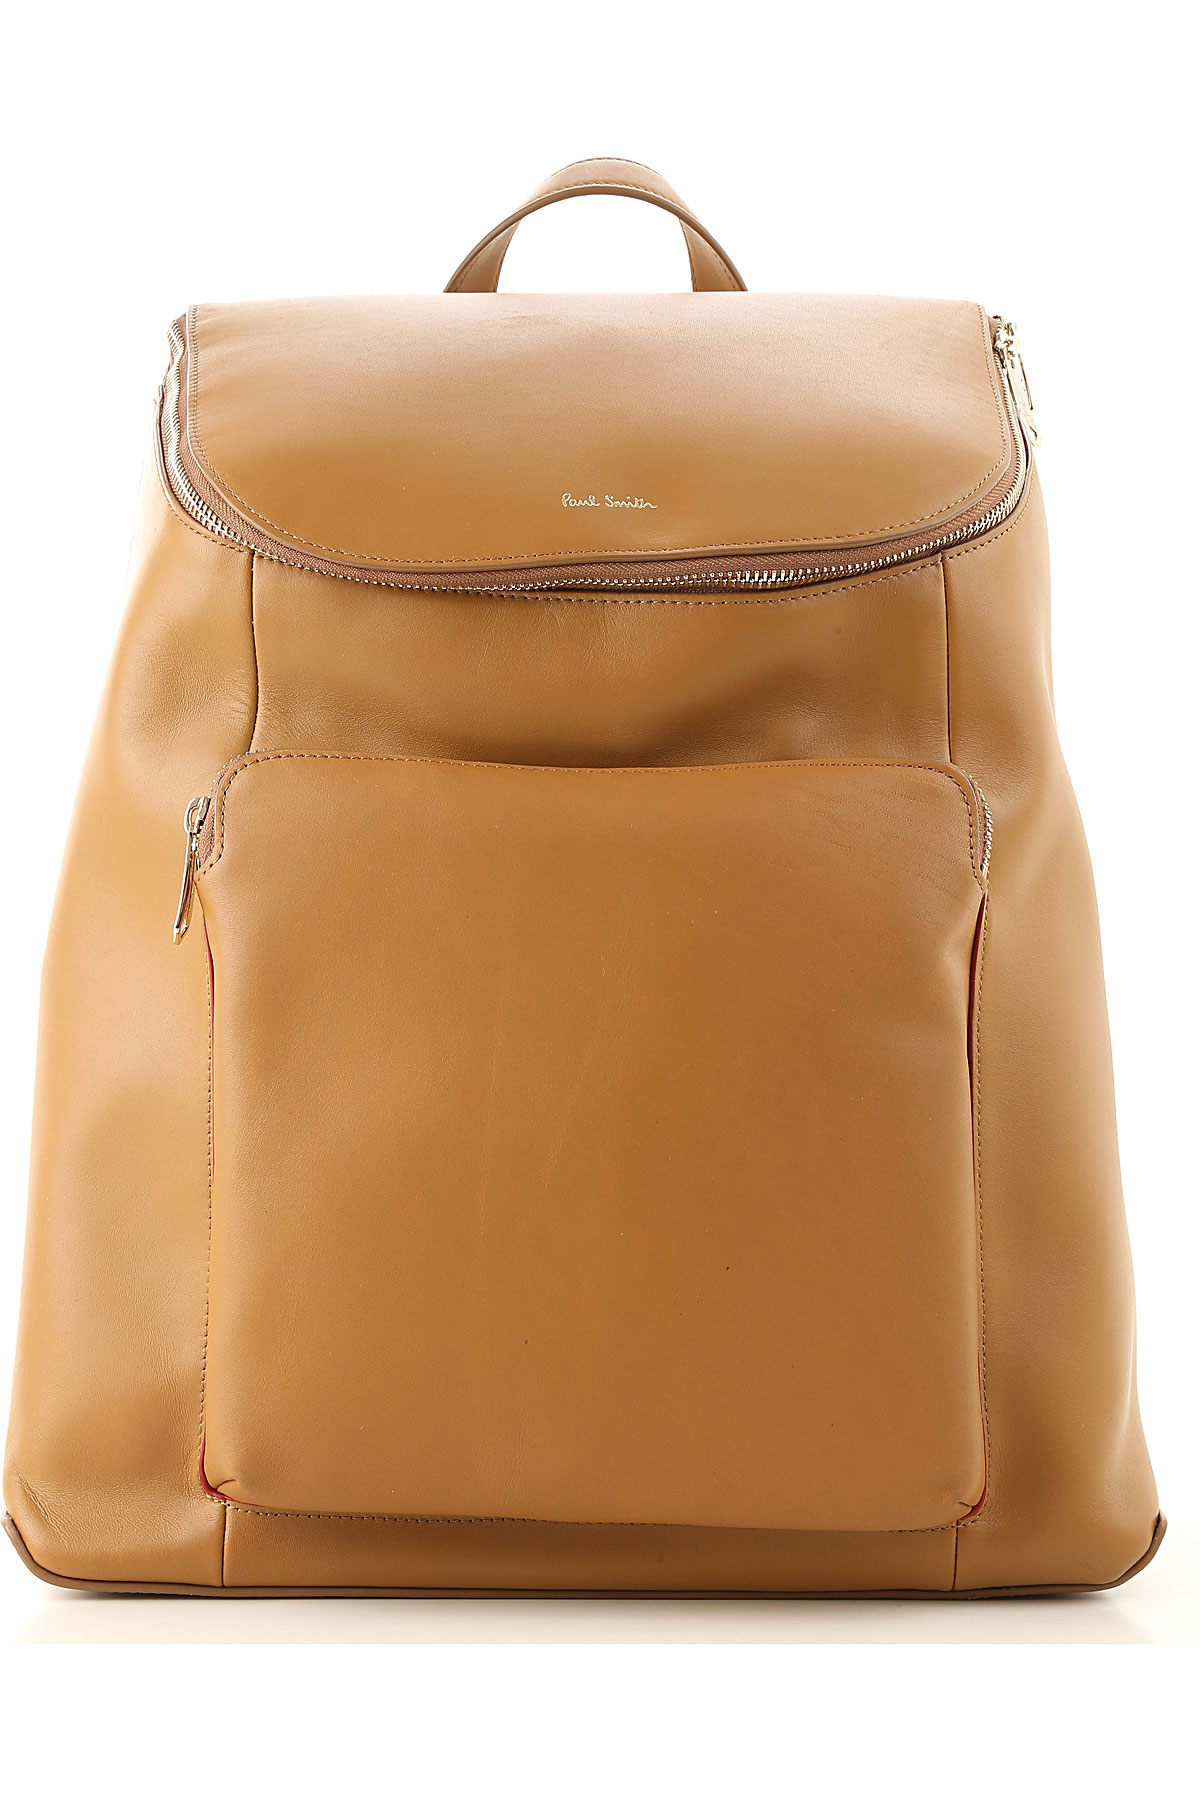 Paul Smith Backpack for Men On Sale, Beige, Leather, 2019